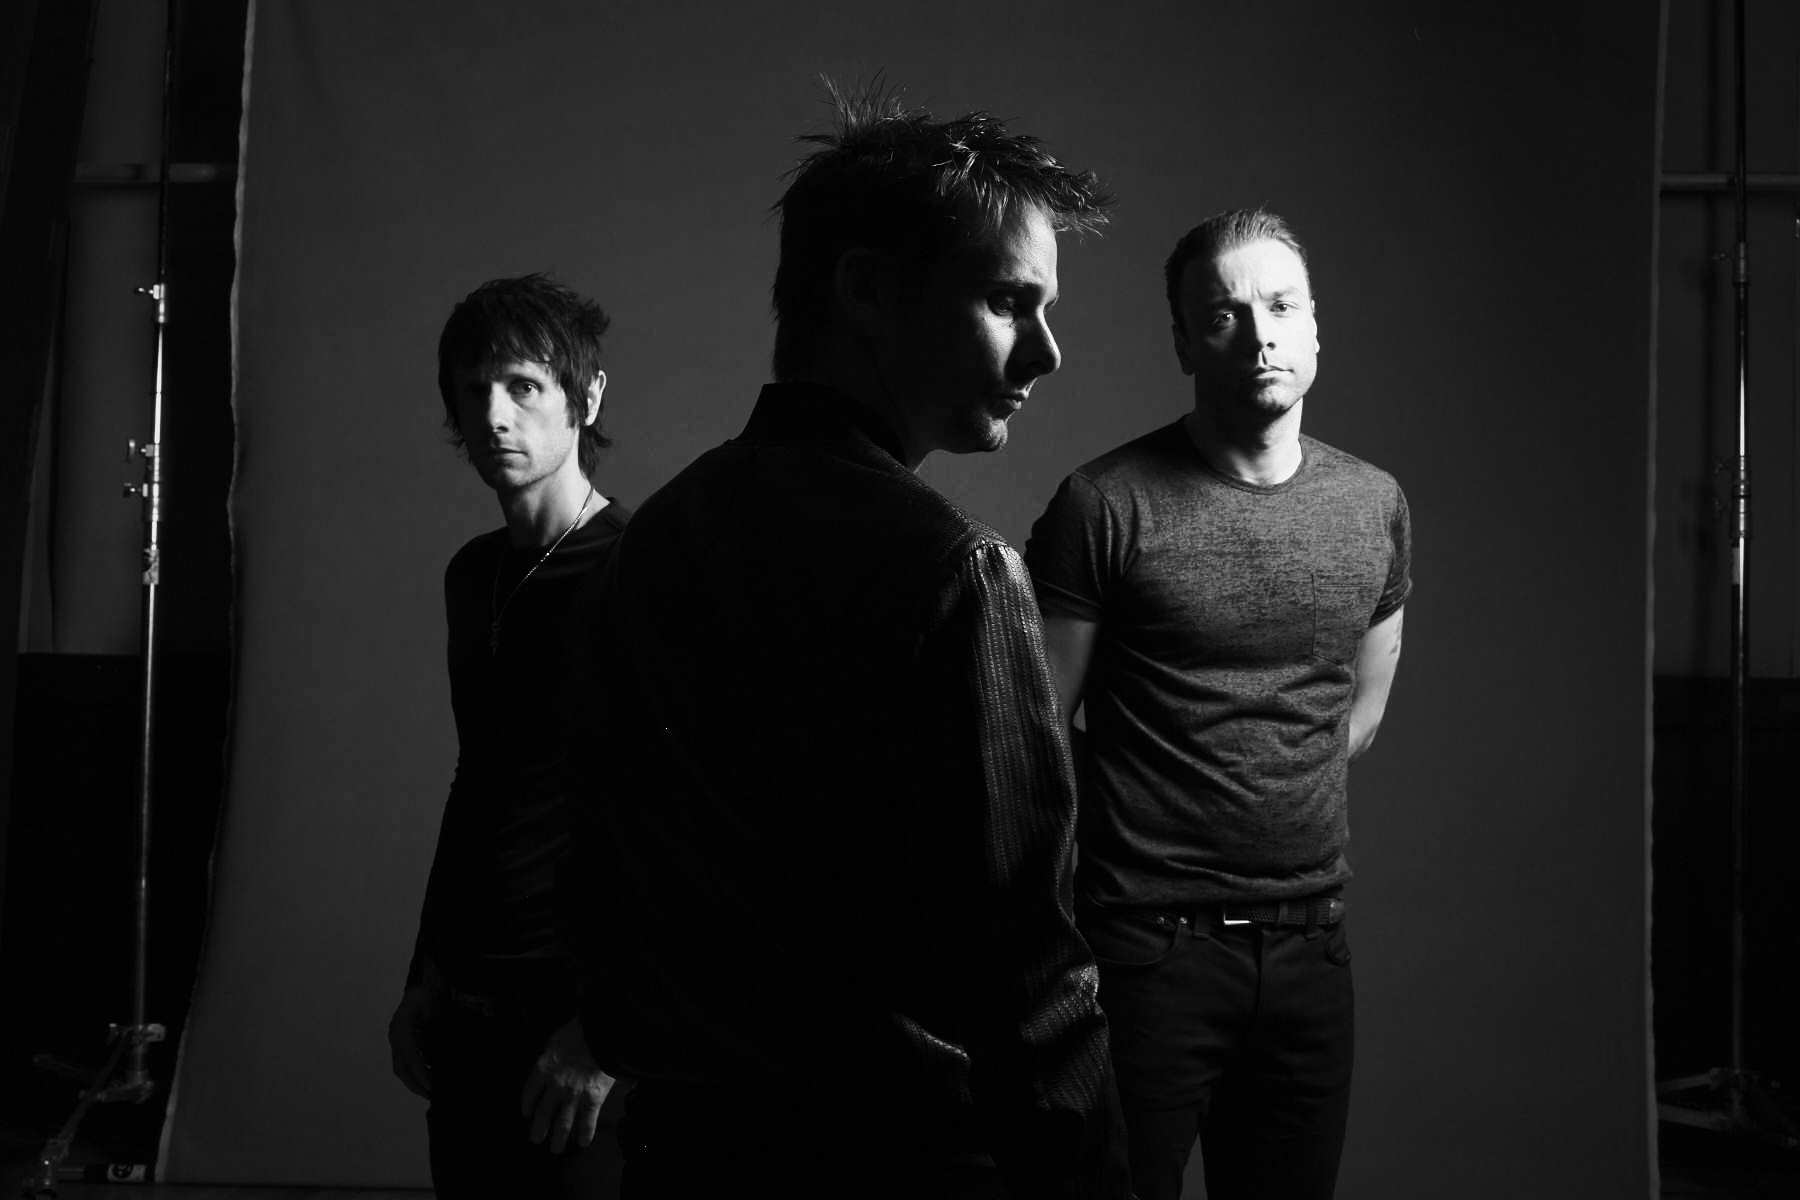 Photo Credit: Danny Clinch for Muse.mu